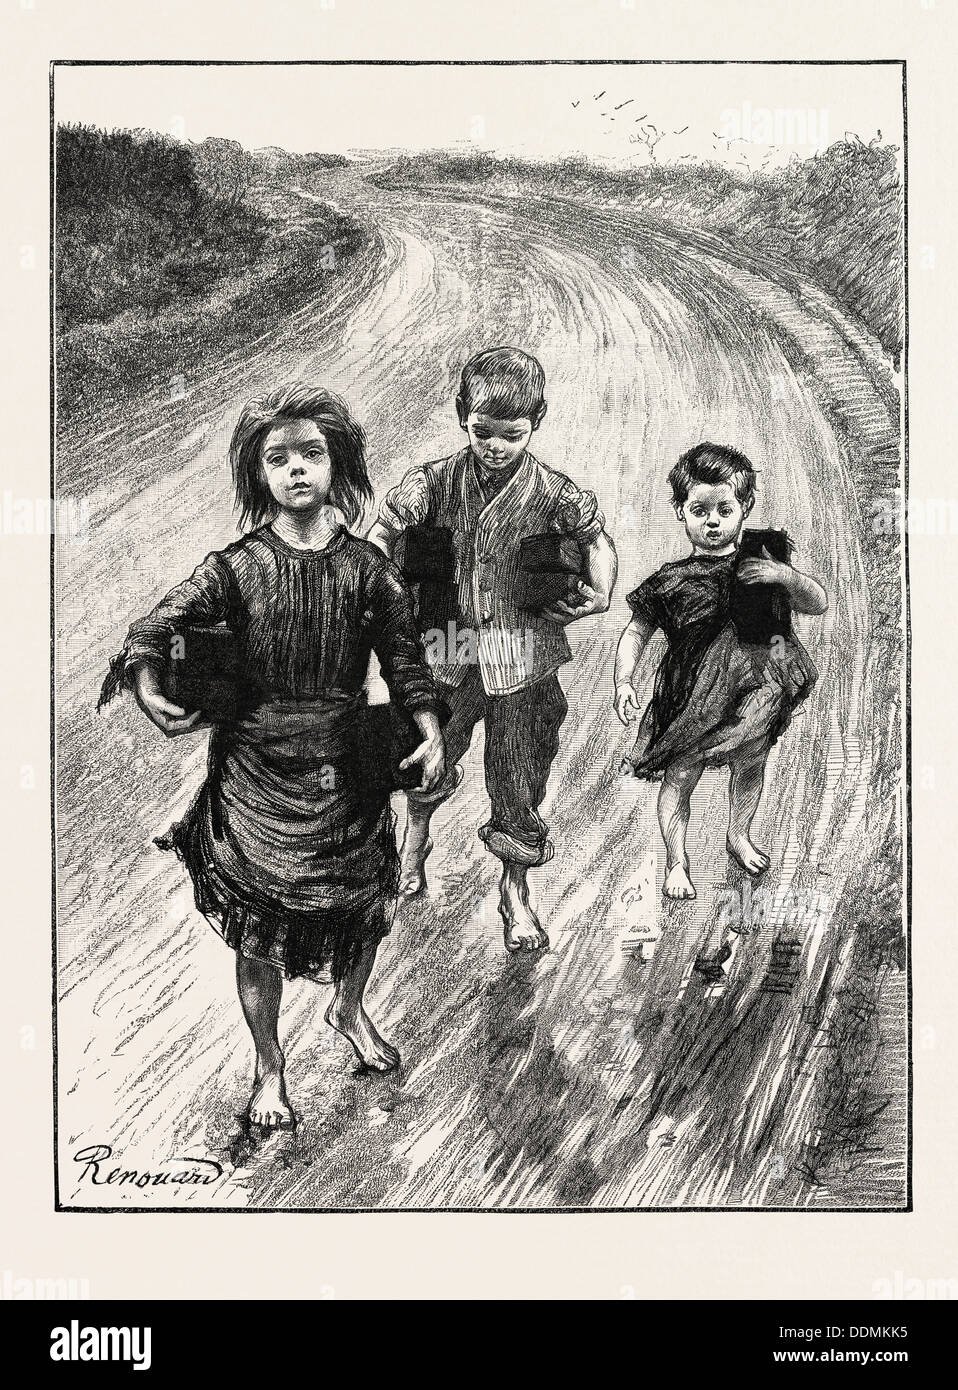 CHILDREN CARRYING TURF TO PAY THEIR SCHOOL FEES, IRELAND, 1888 engraving - Stock Image